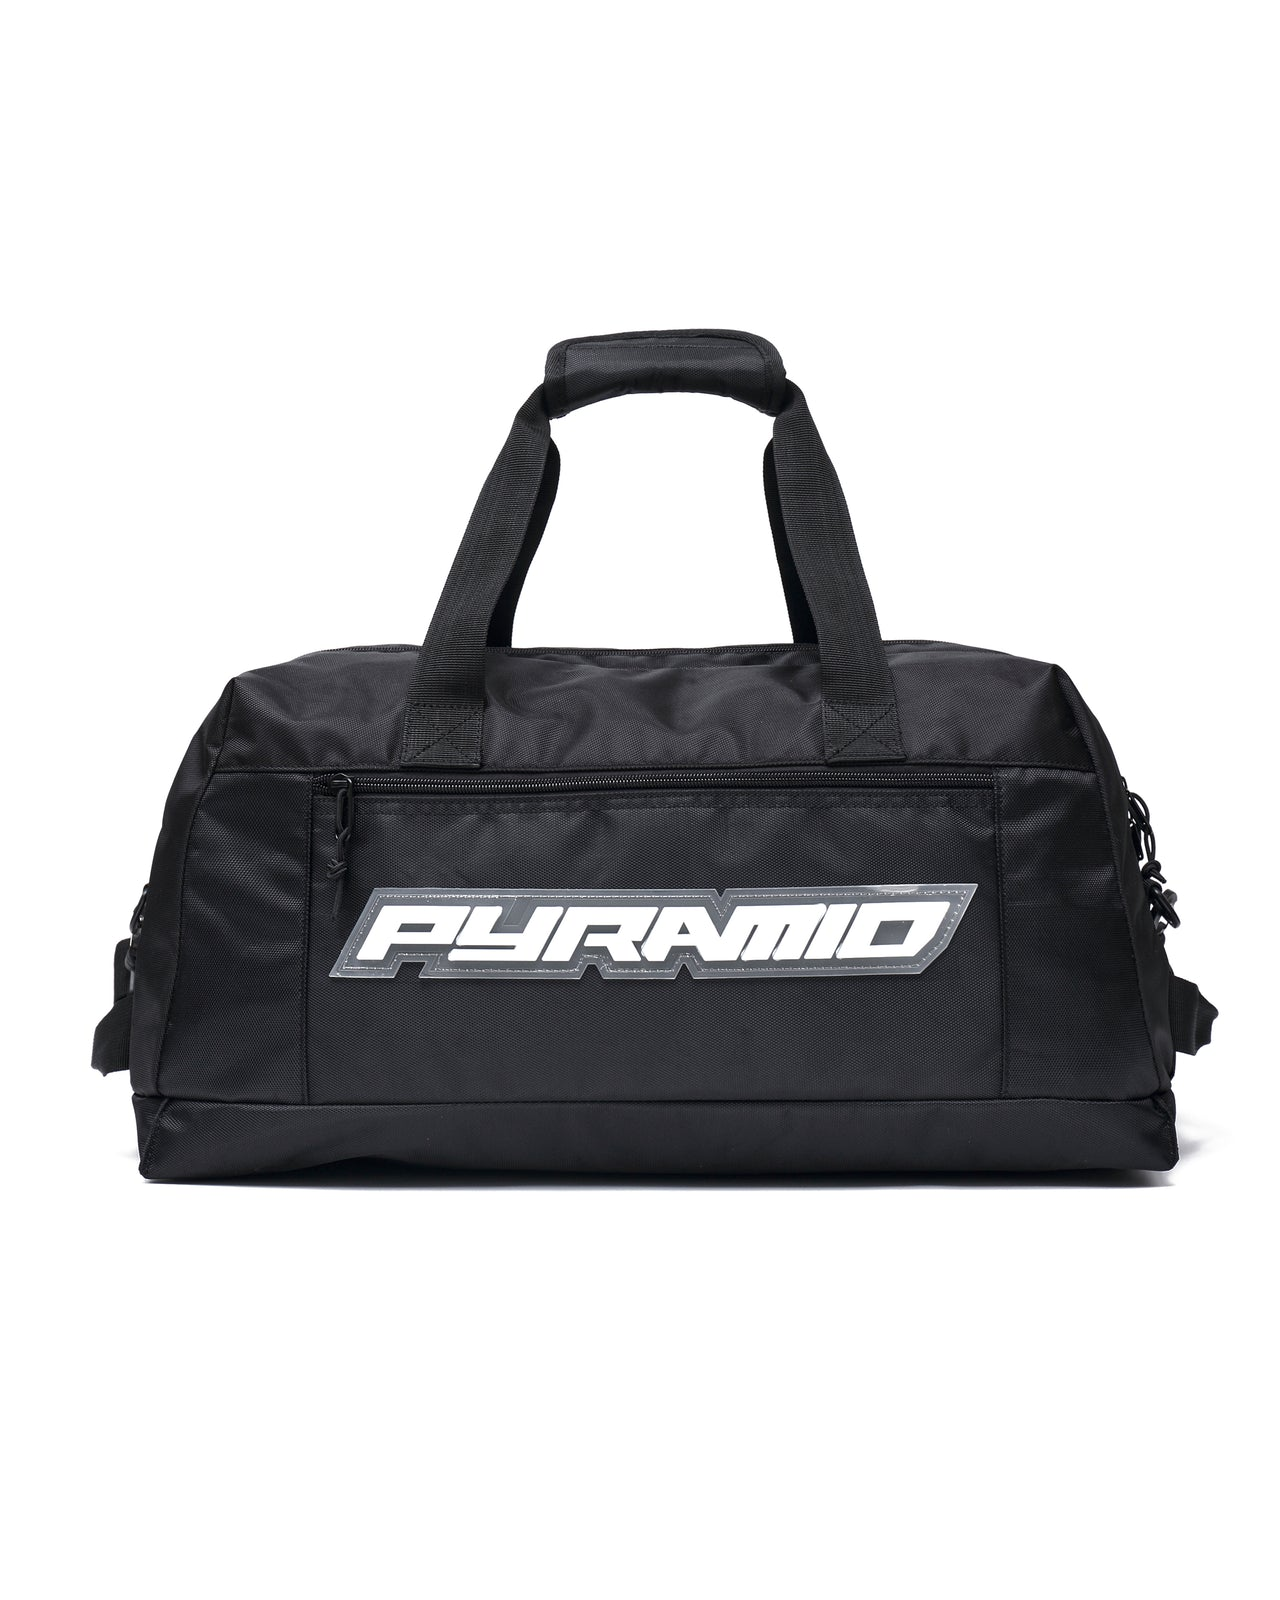 WEEKEND DUFFEL - Color: BLACK